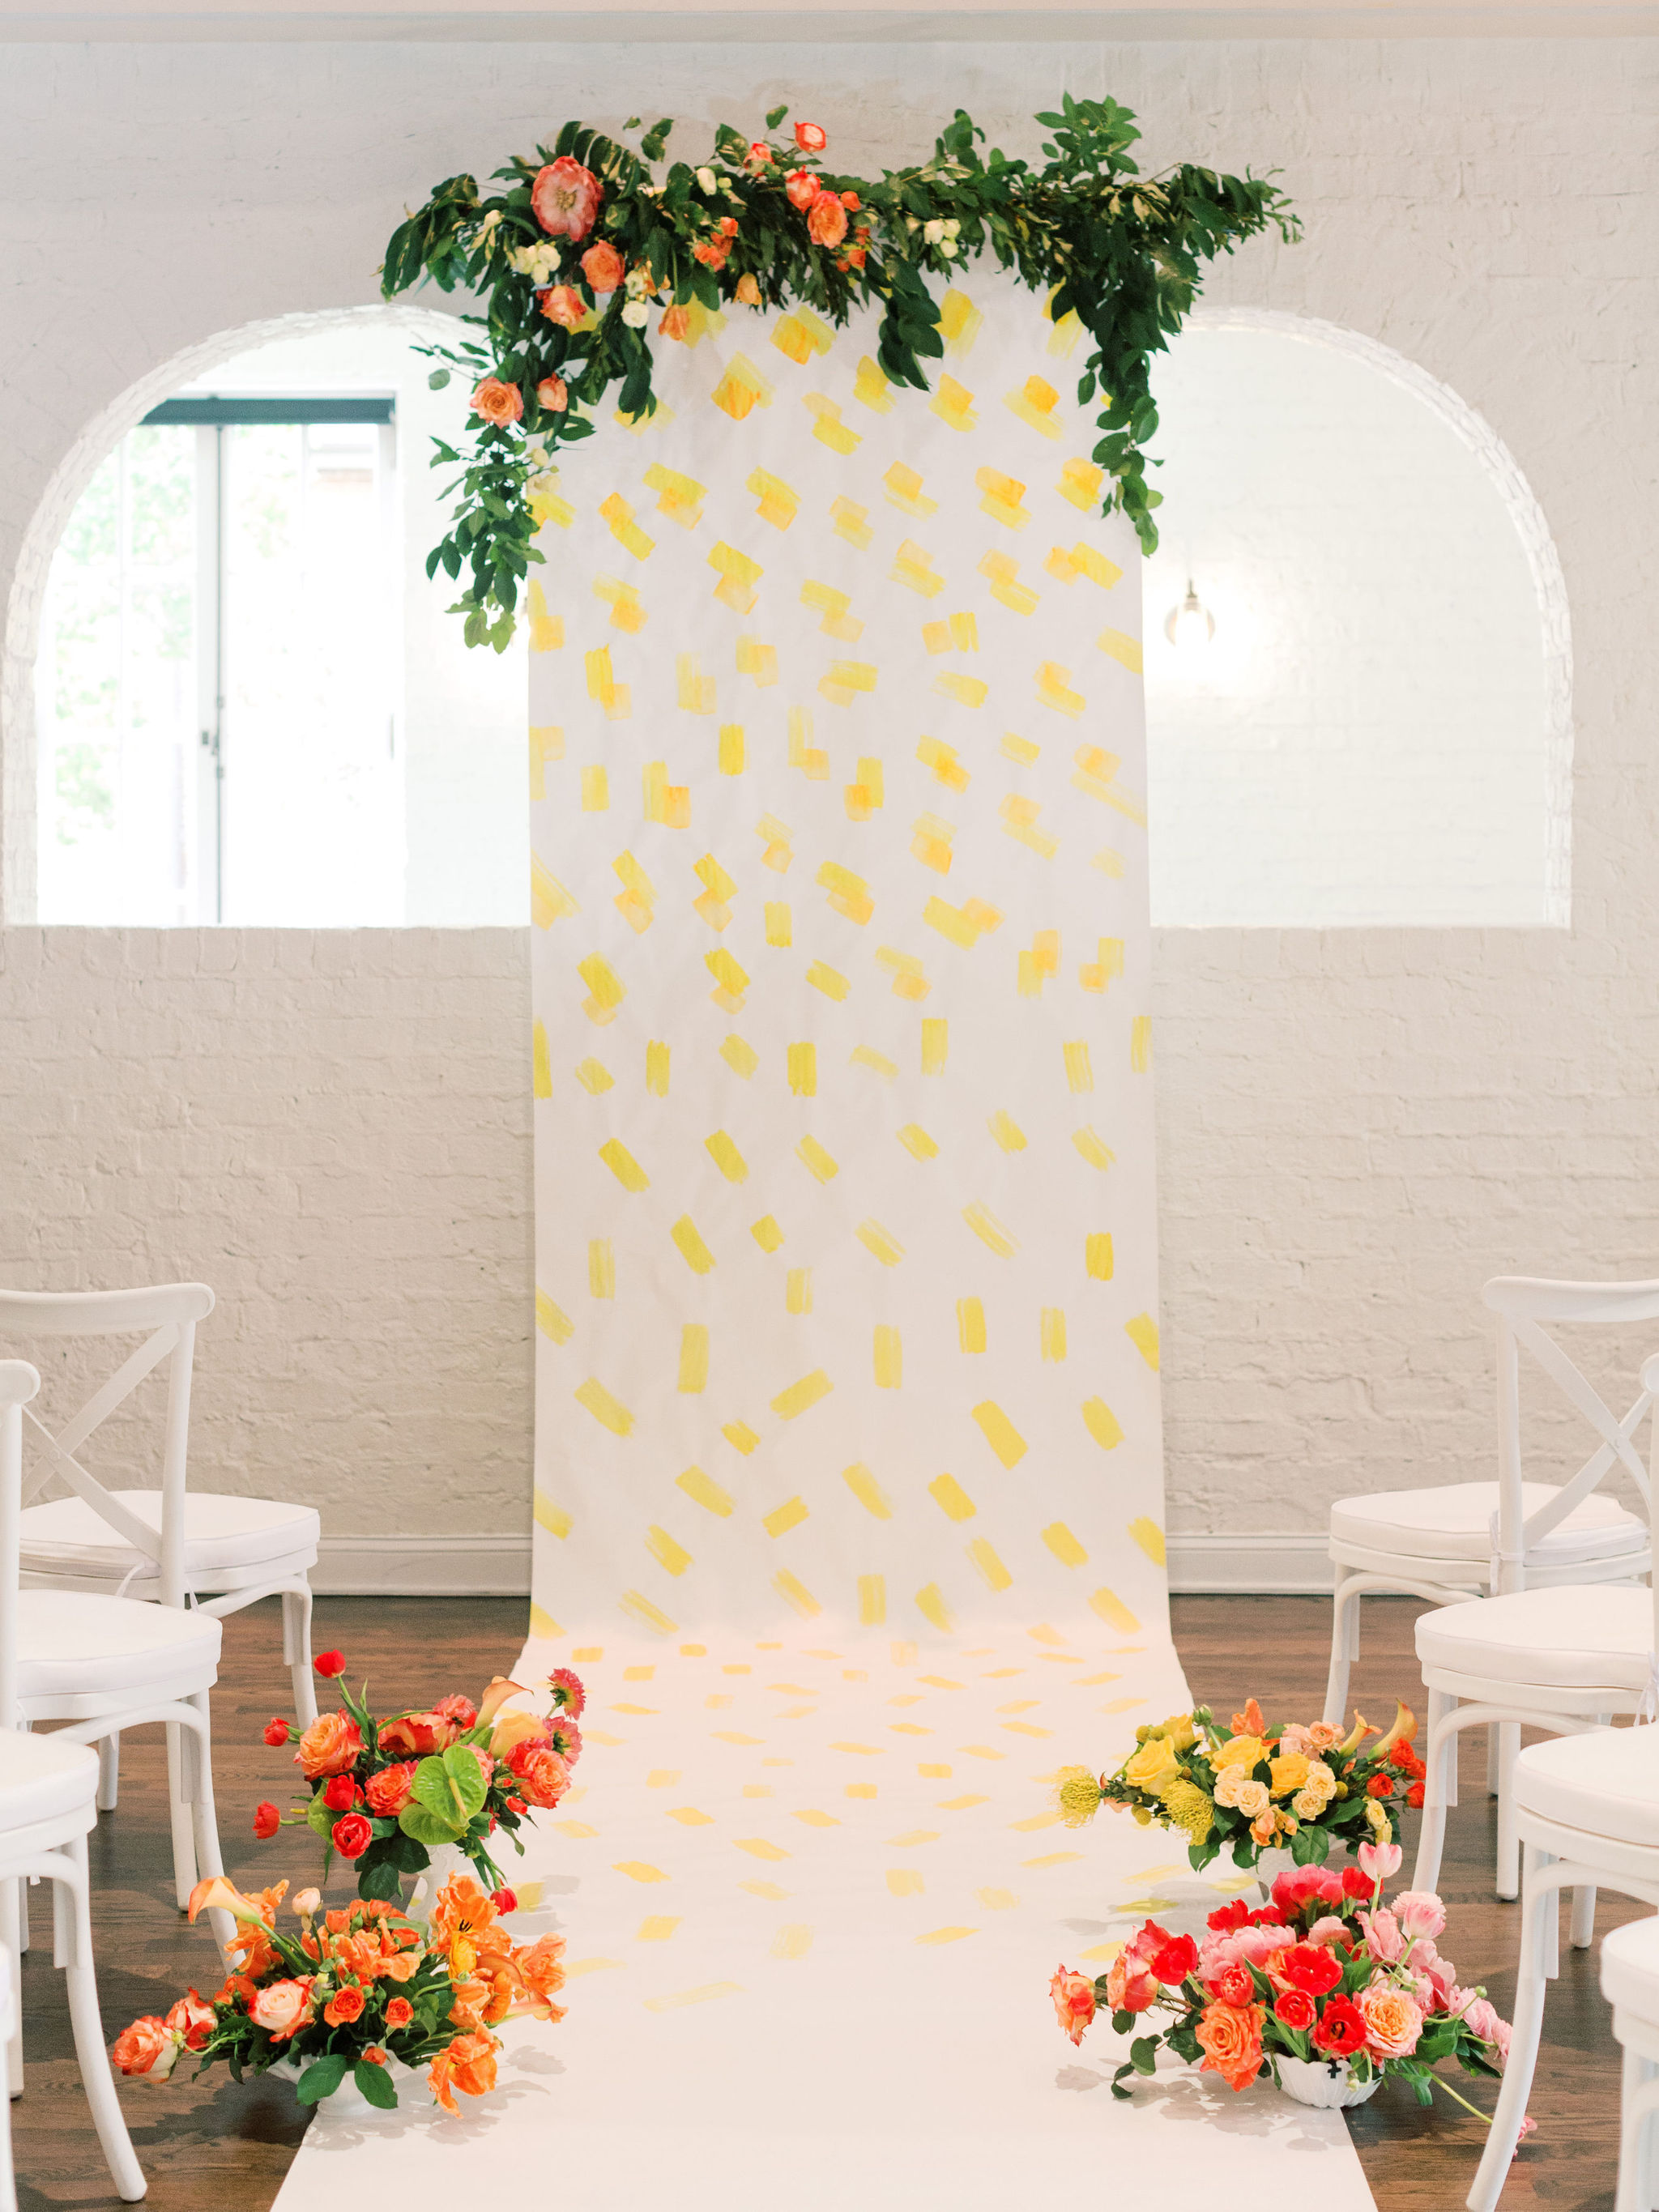 Painted Wedding Paper Ceremony Backdrop